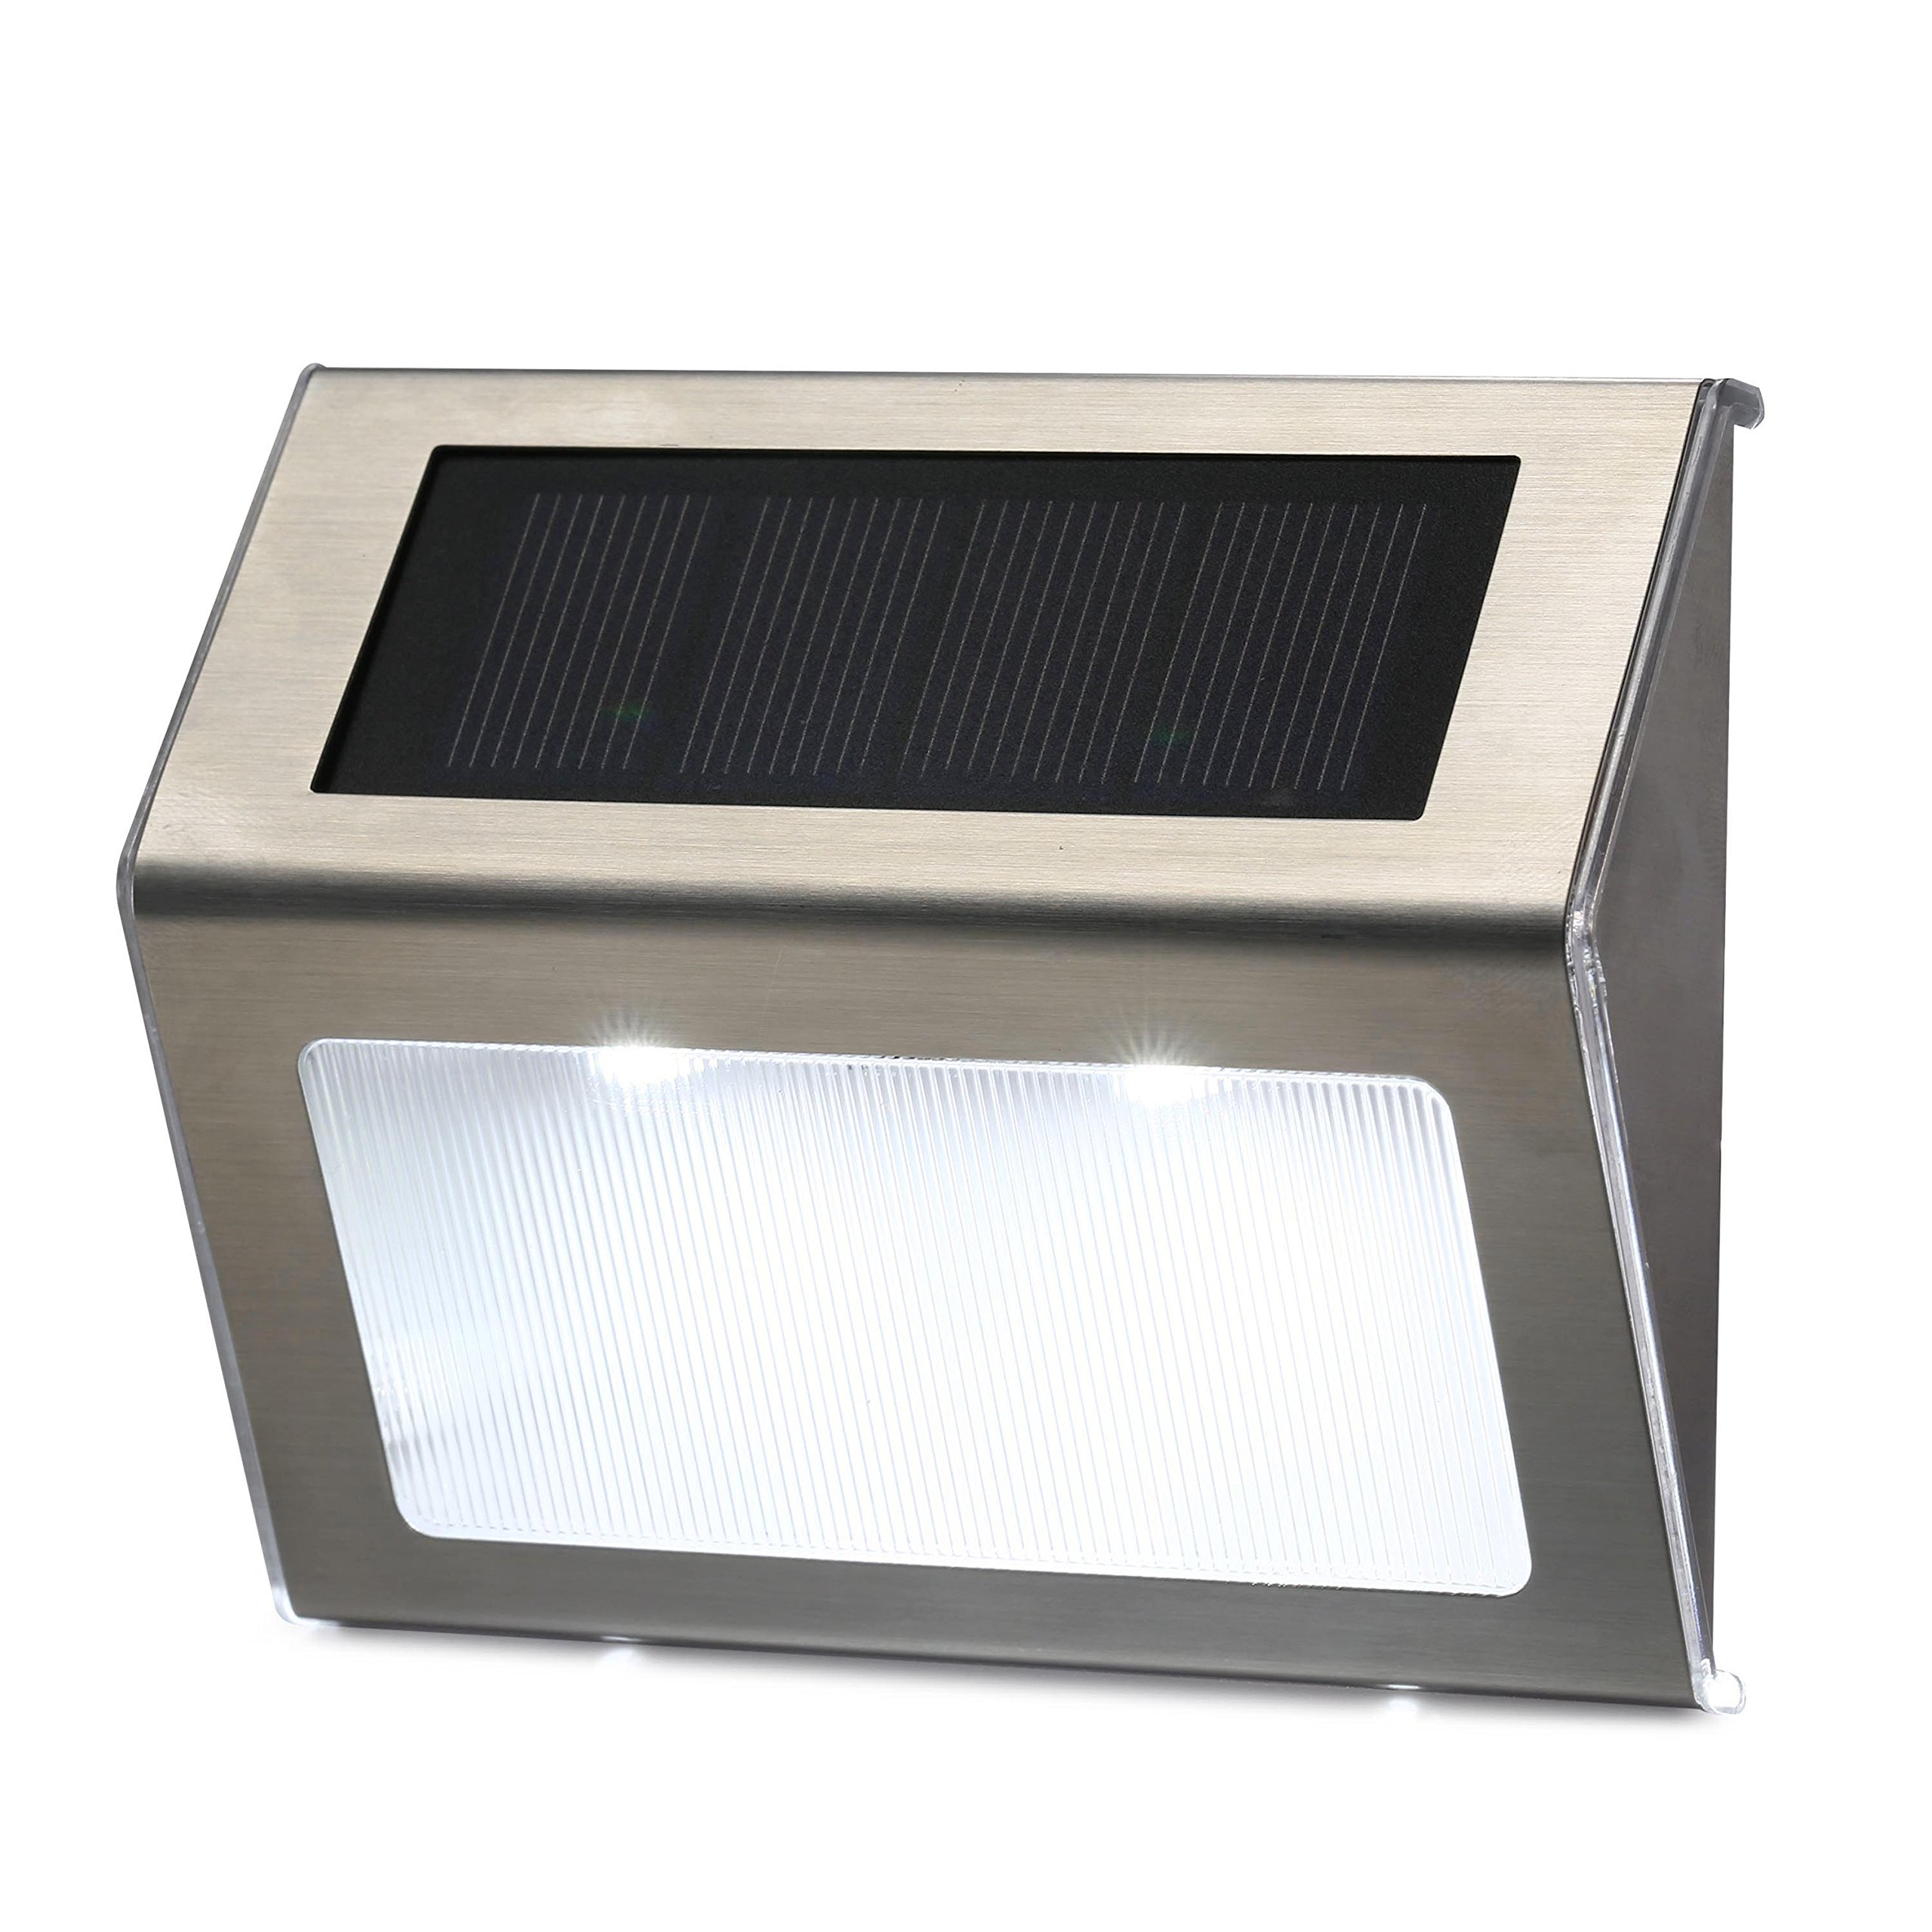 Lampmall Solar Step Lights Led Stair Lighting Stainless Steel Outdoor Waterproof Lamp for Deck, Patio, Garden, Yard with Auto on Off (10 Pack)